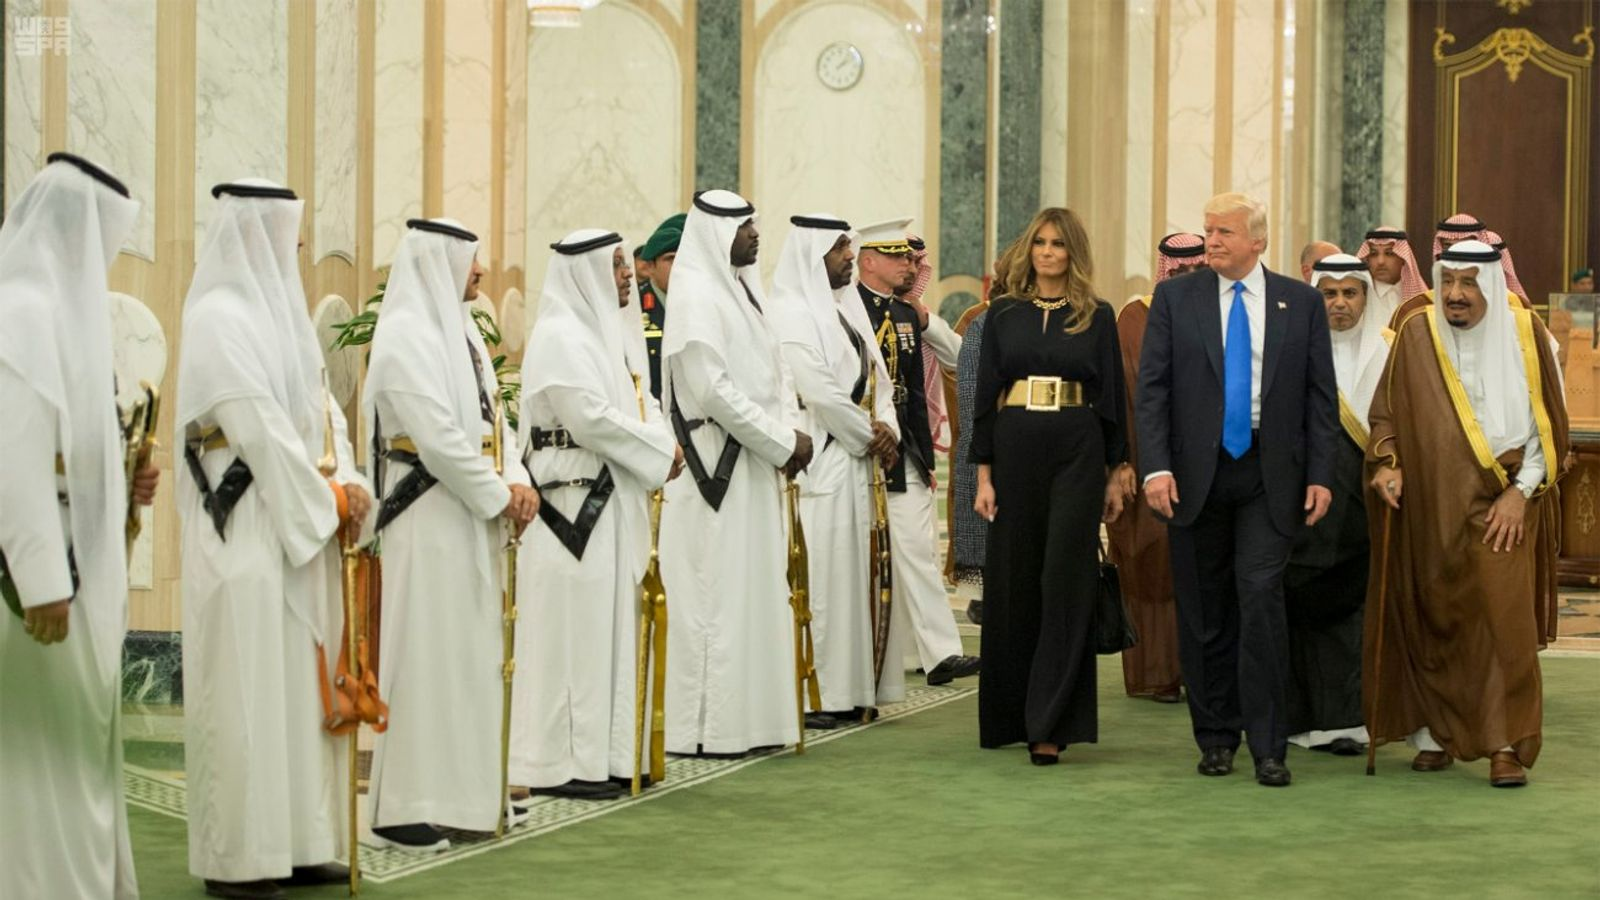 Tensions deepen between Saudi, Iran, US after Trump visit